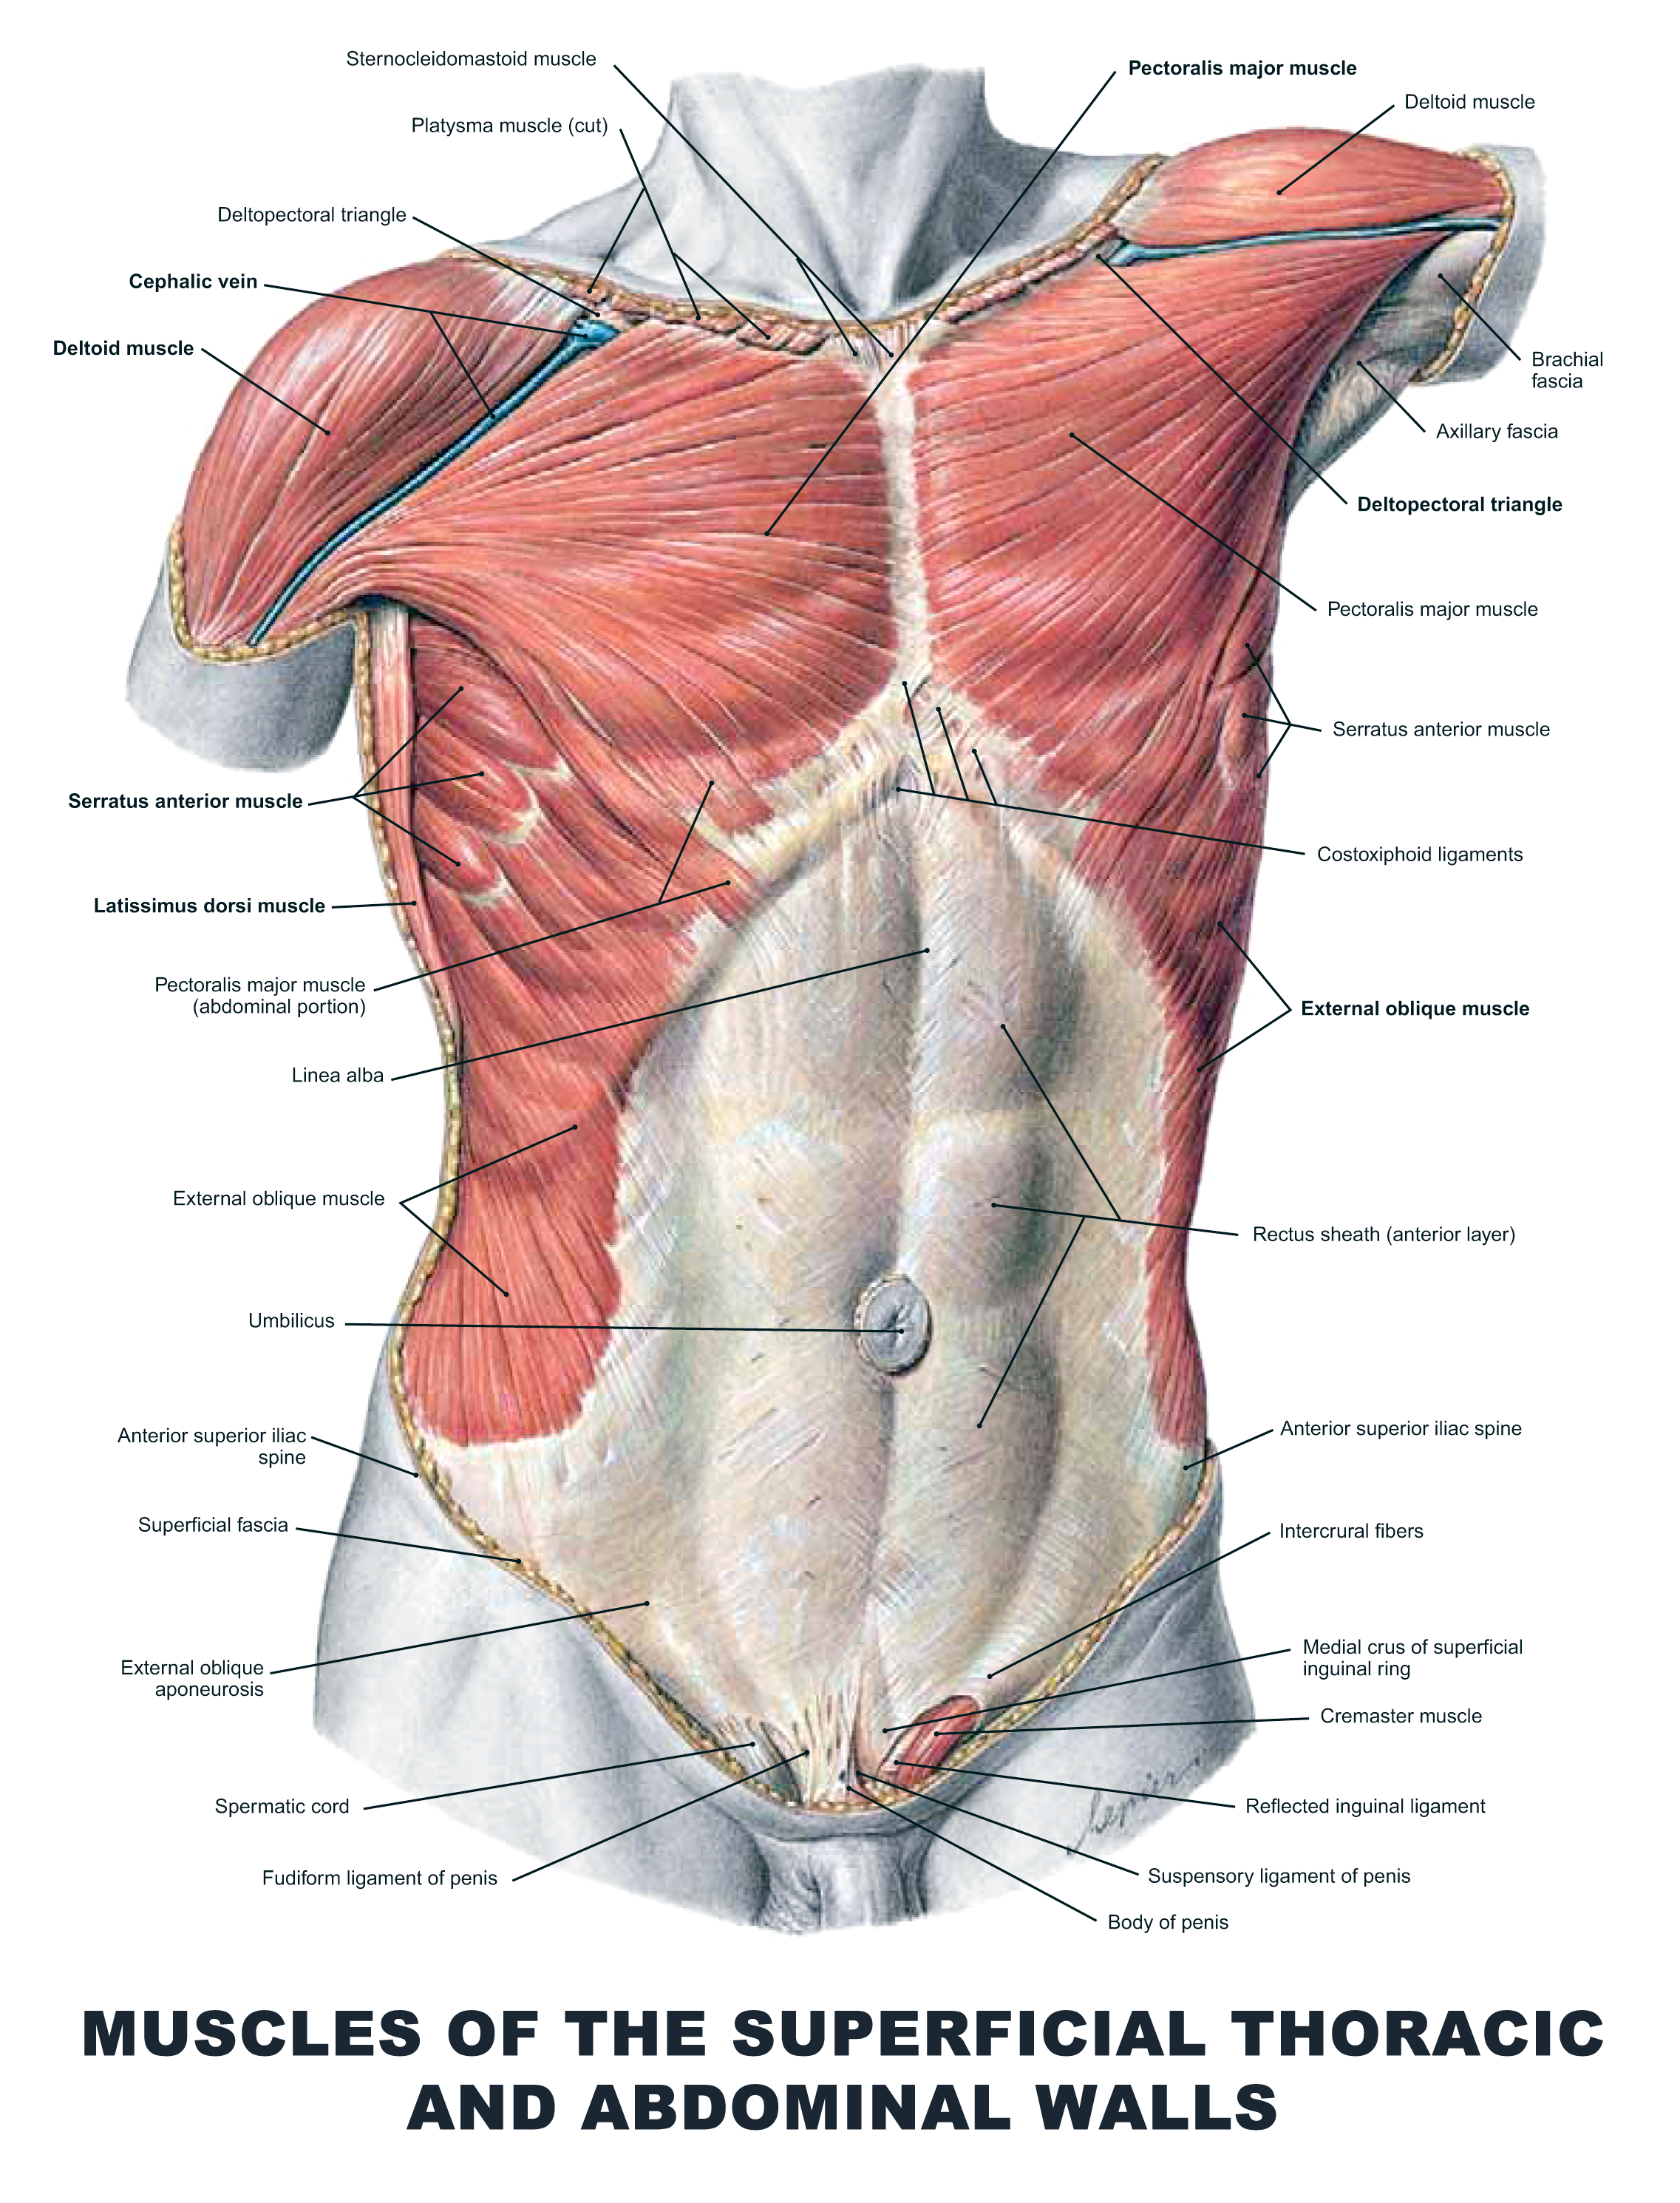 Muscles Of The Superficial Thoracic And Abdominal Walls Anatomy